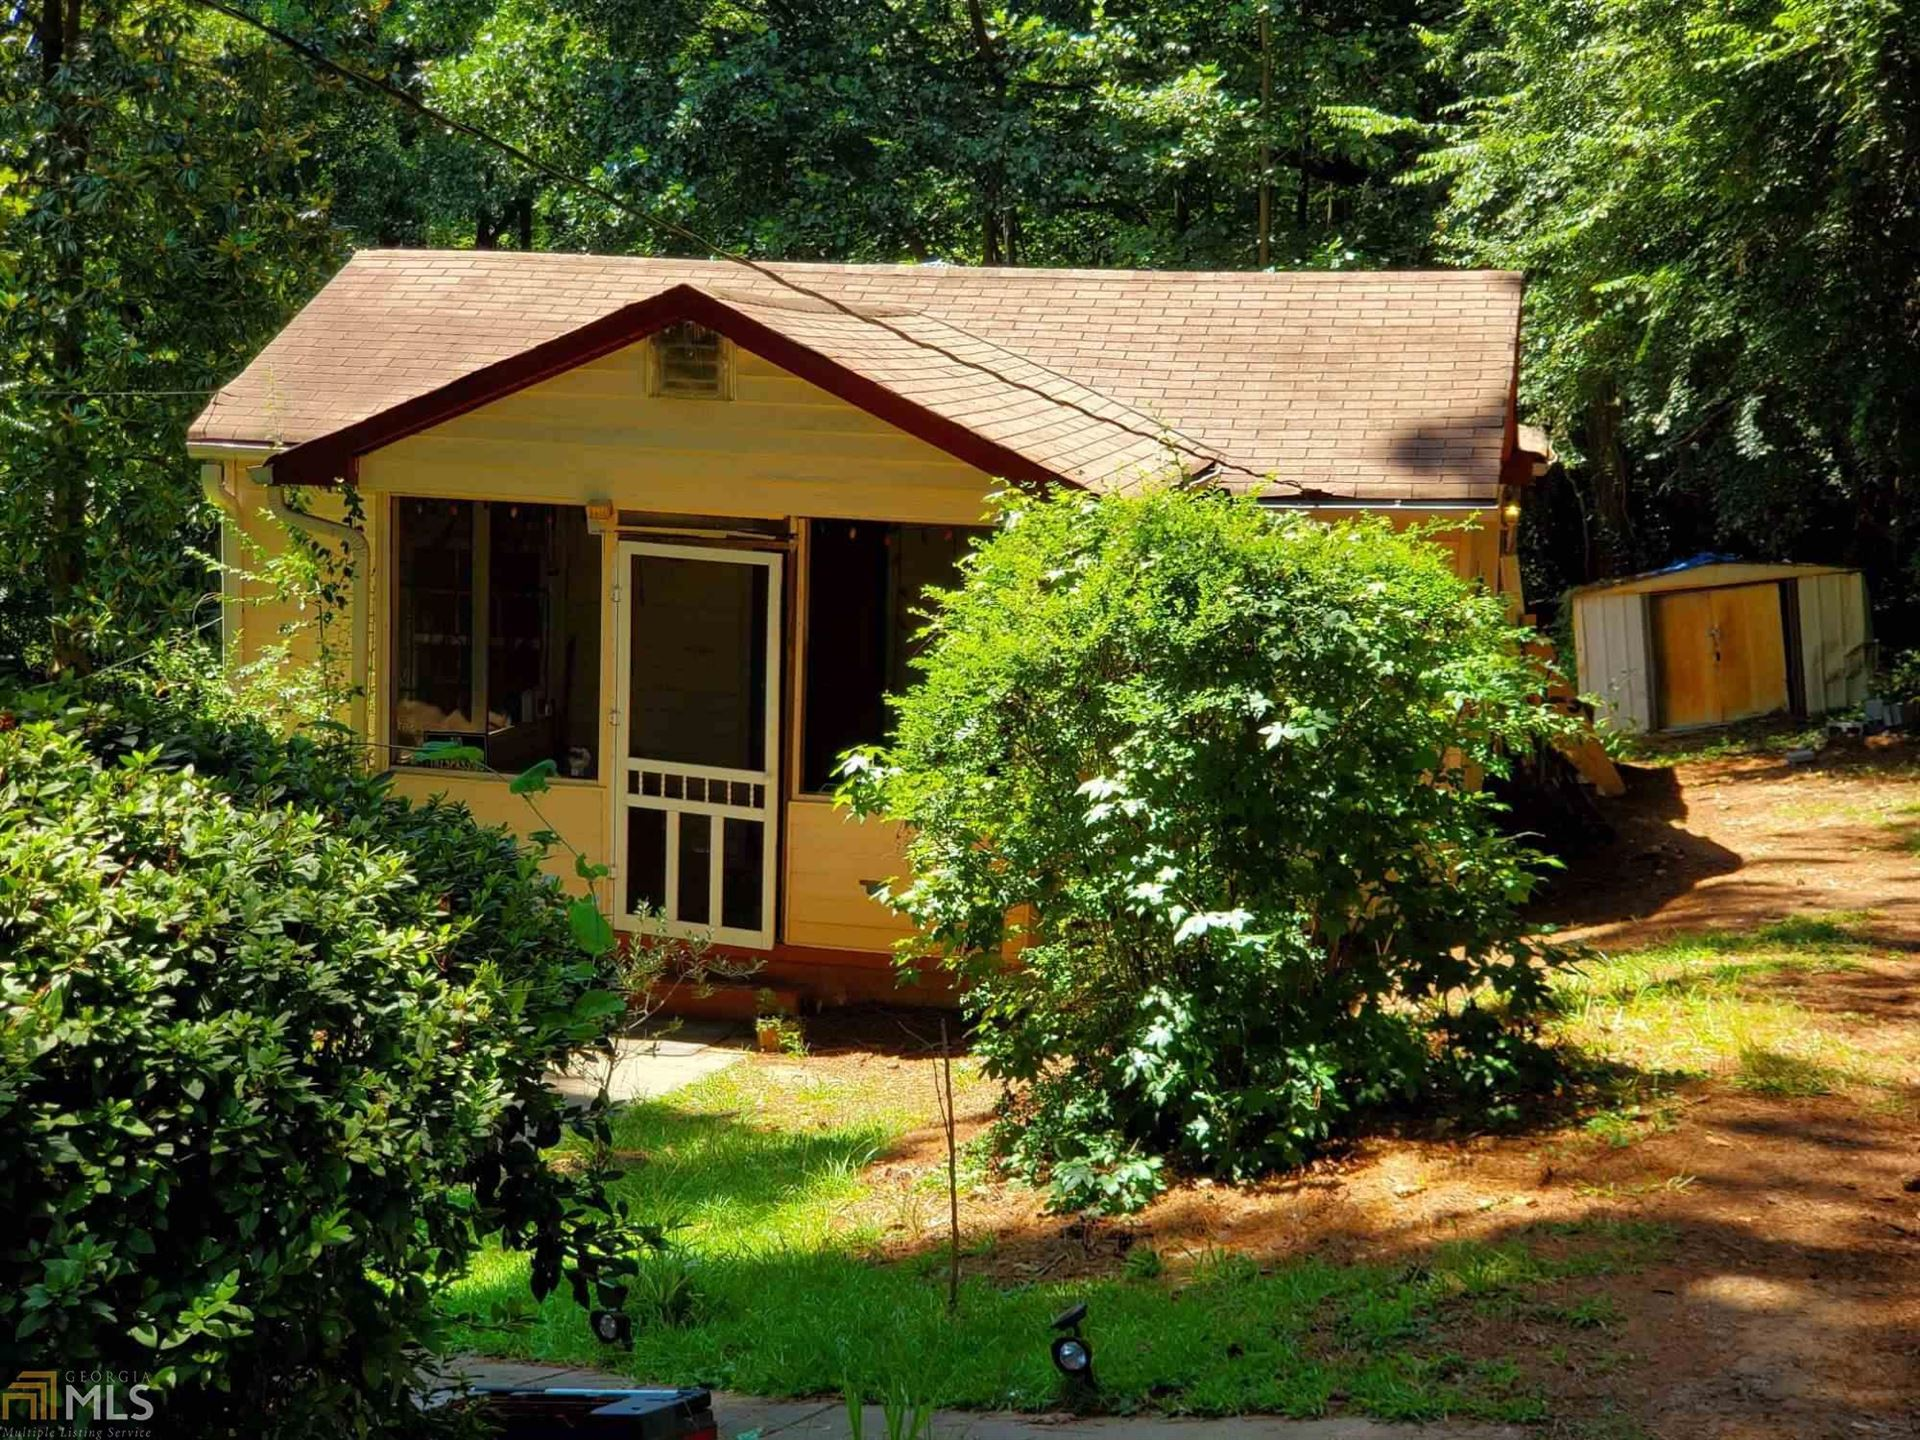 1829 County Line Rd, Atlanta, GA 30331 - MLS#: 8842105